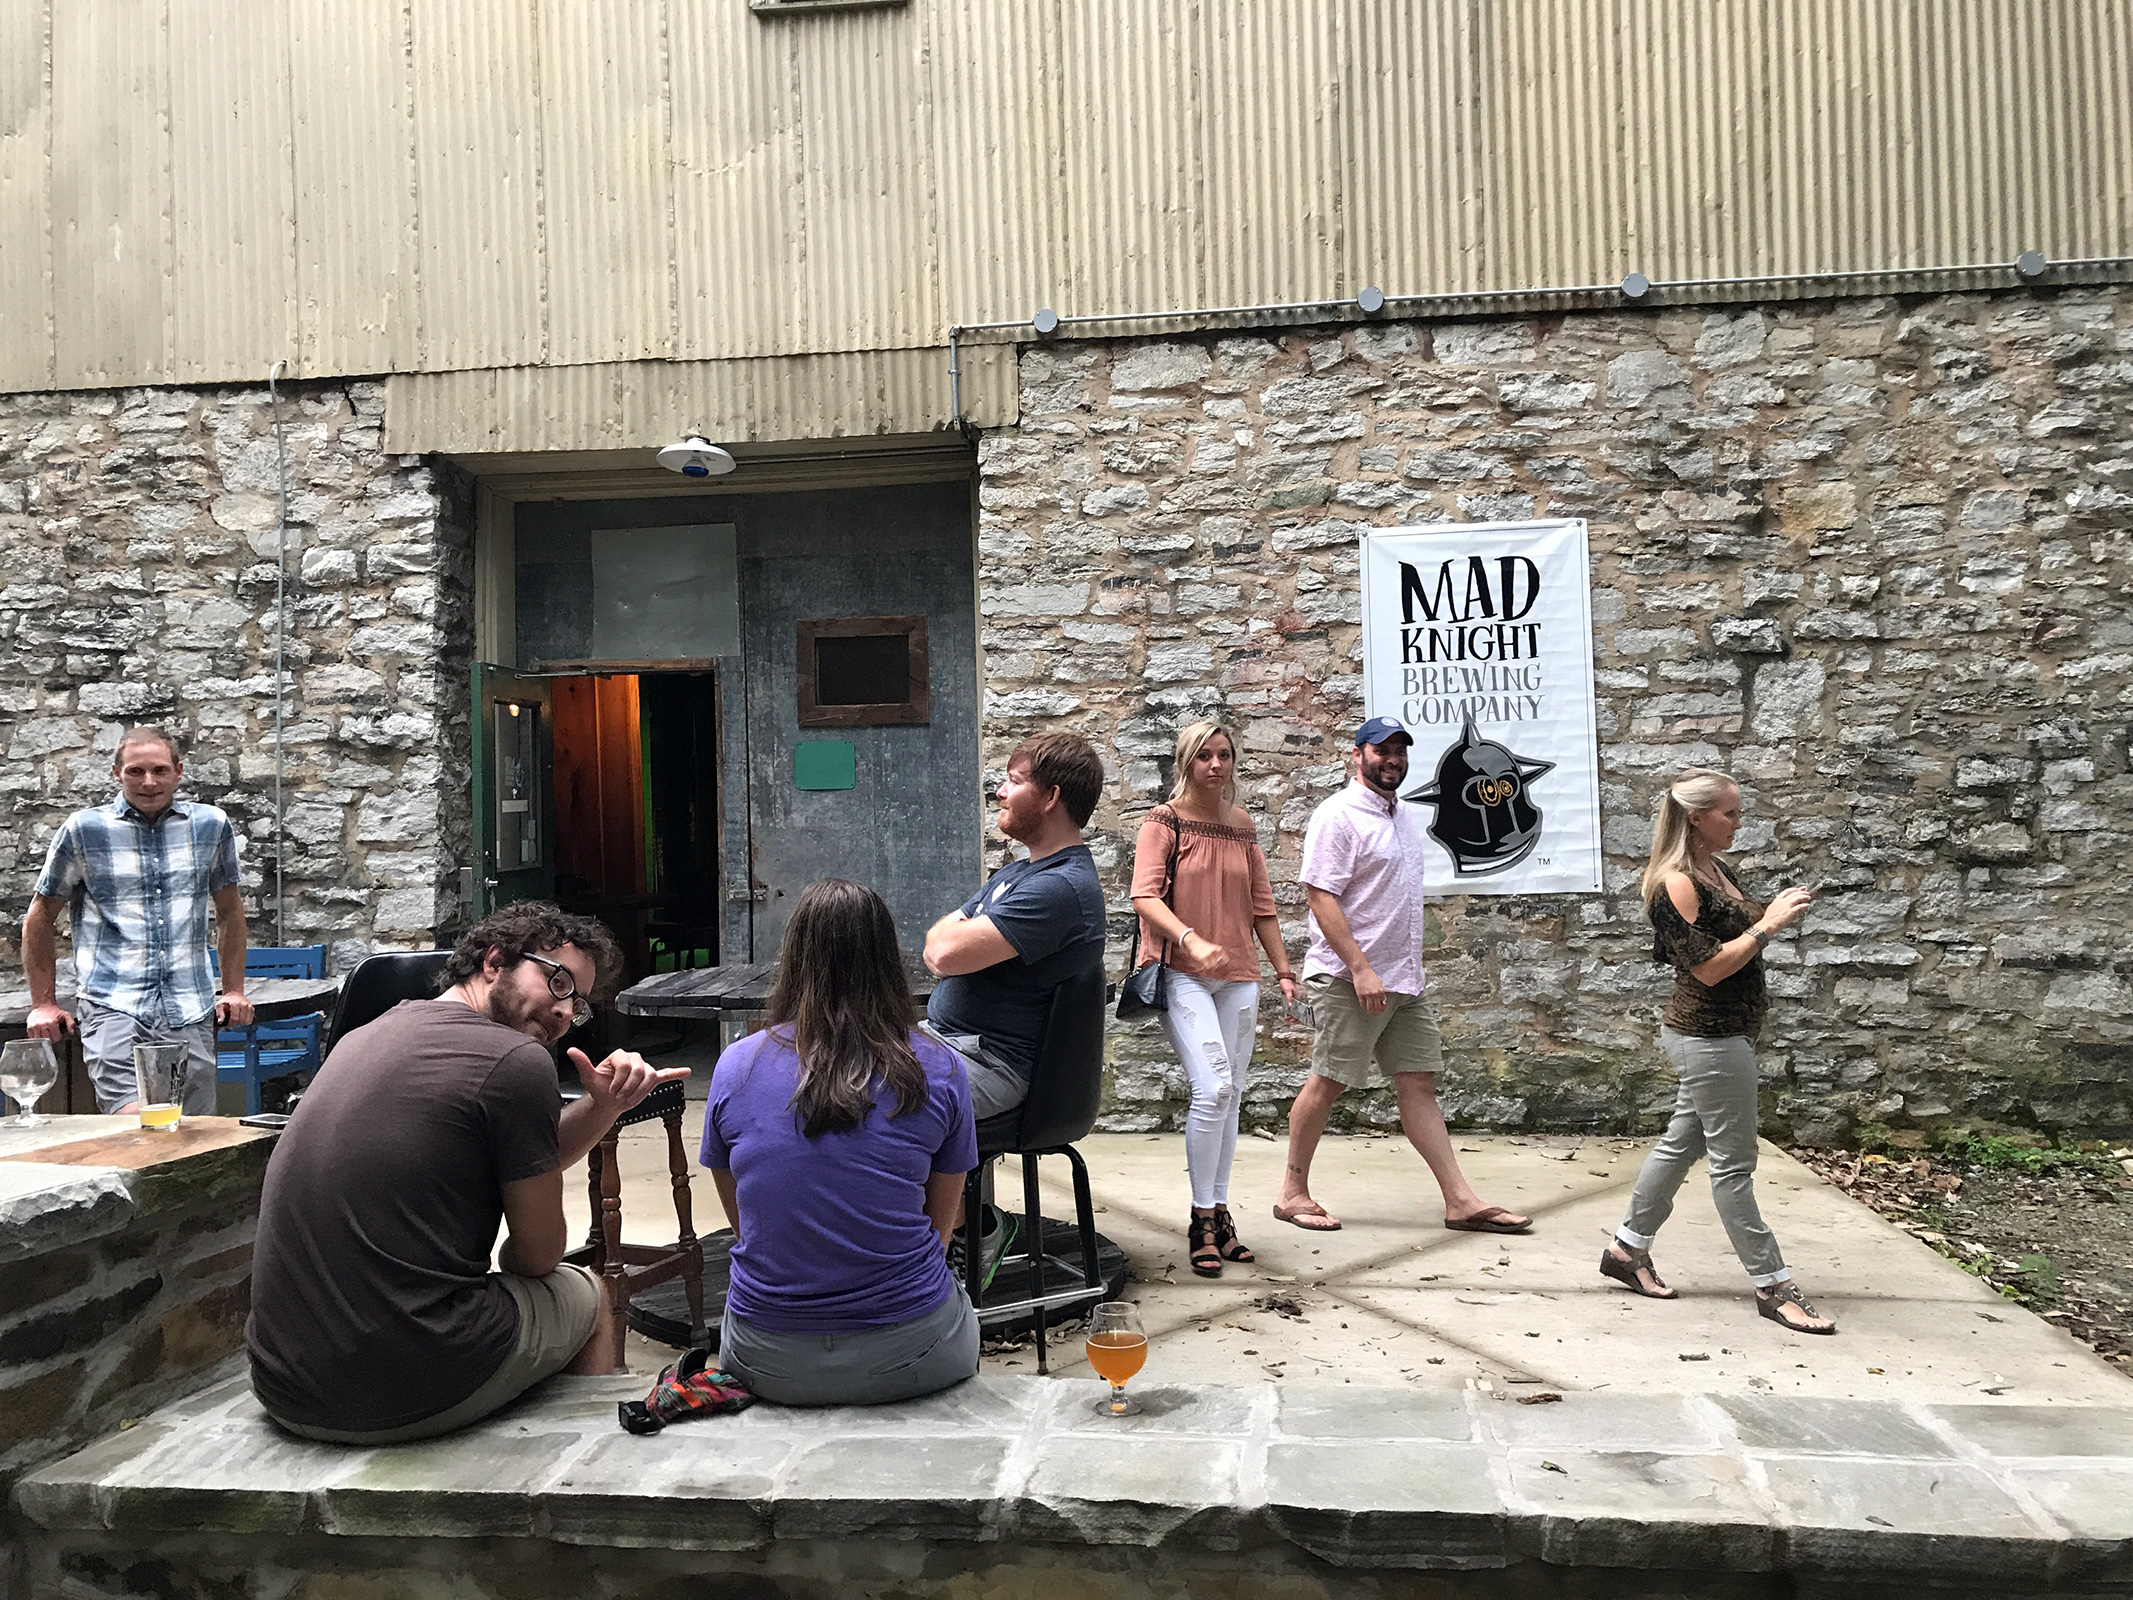 Mad Knight Brewing Co. in Chattanooga, TN by Jets Like Taxis